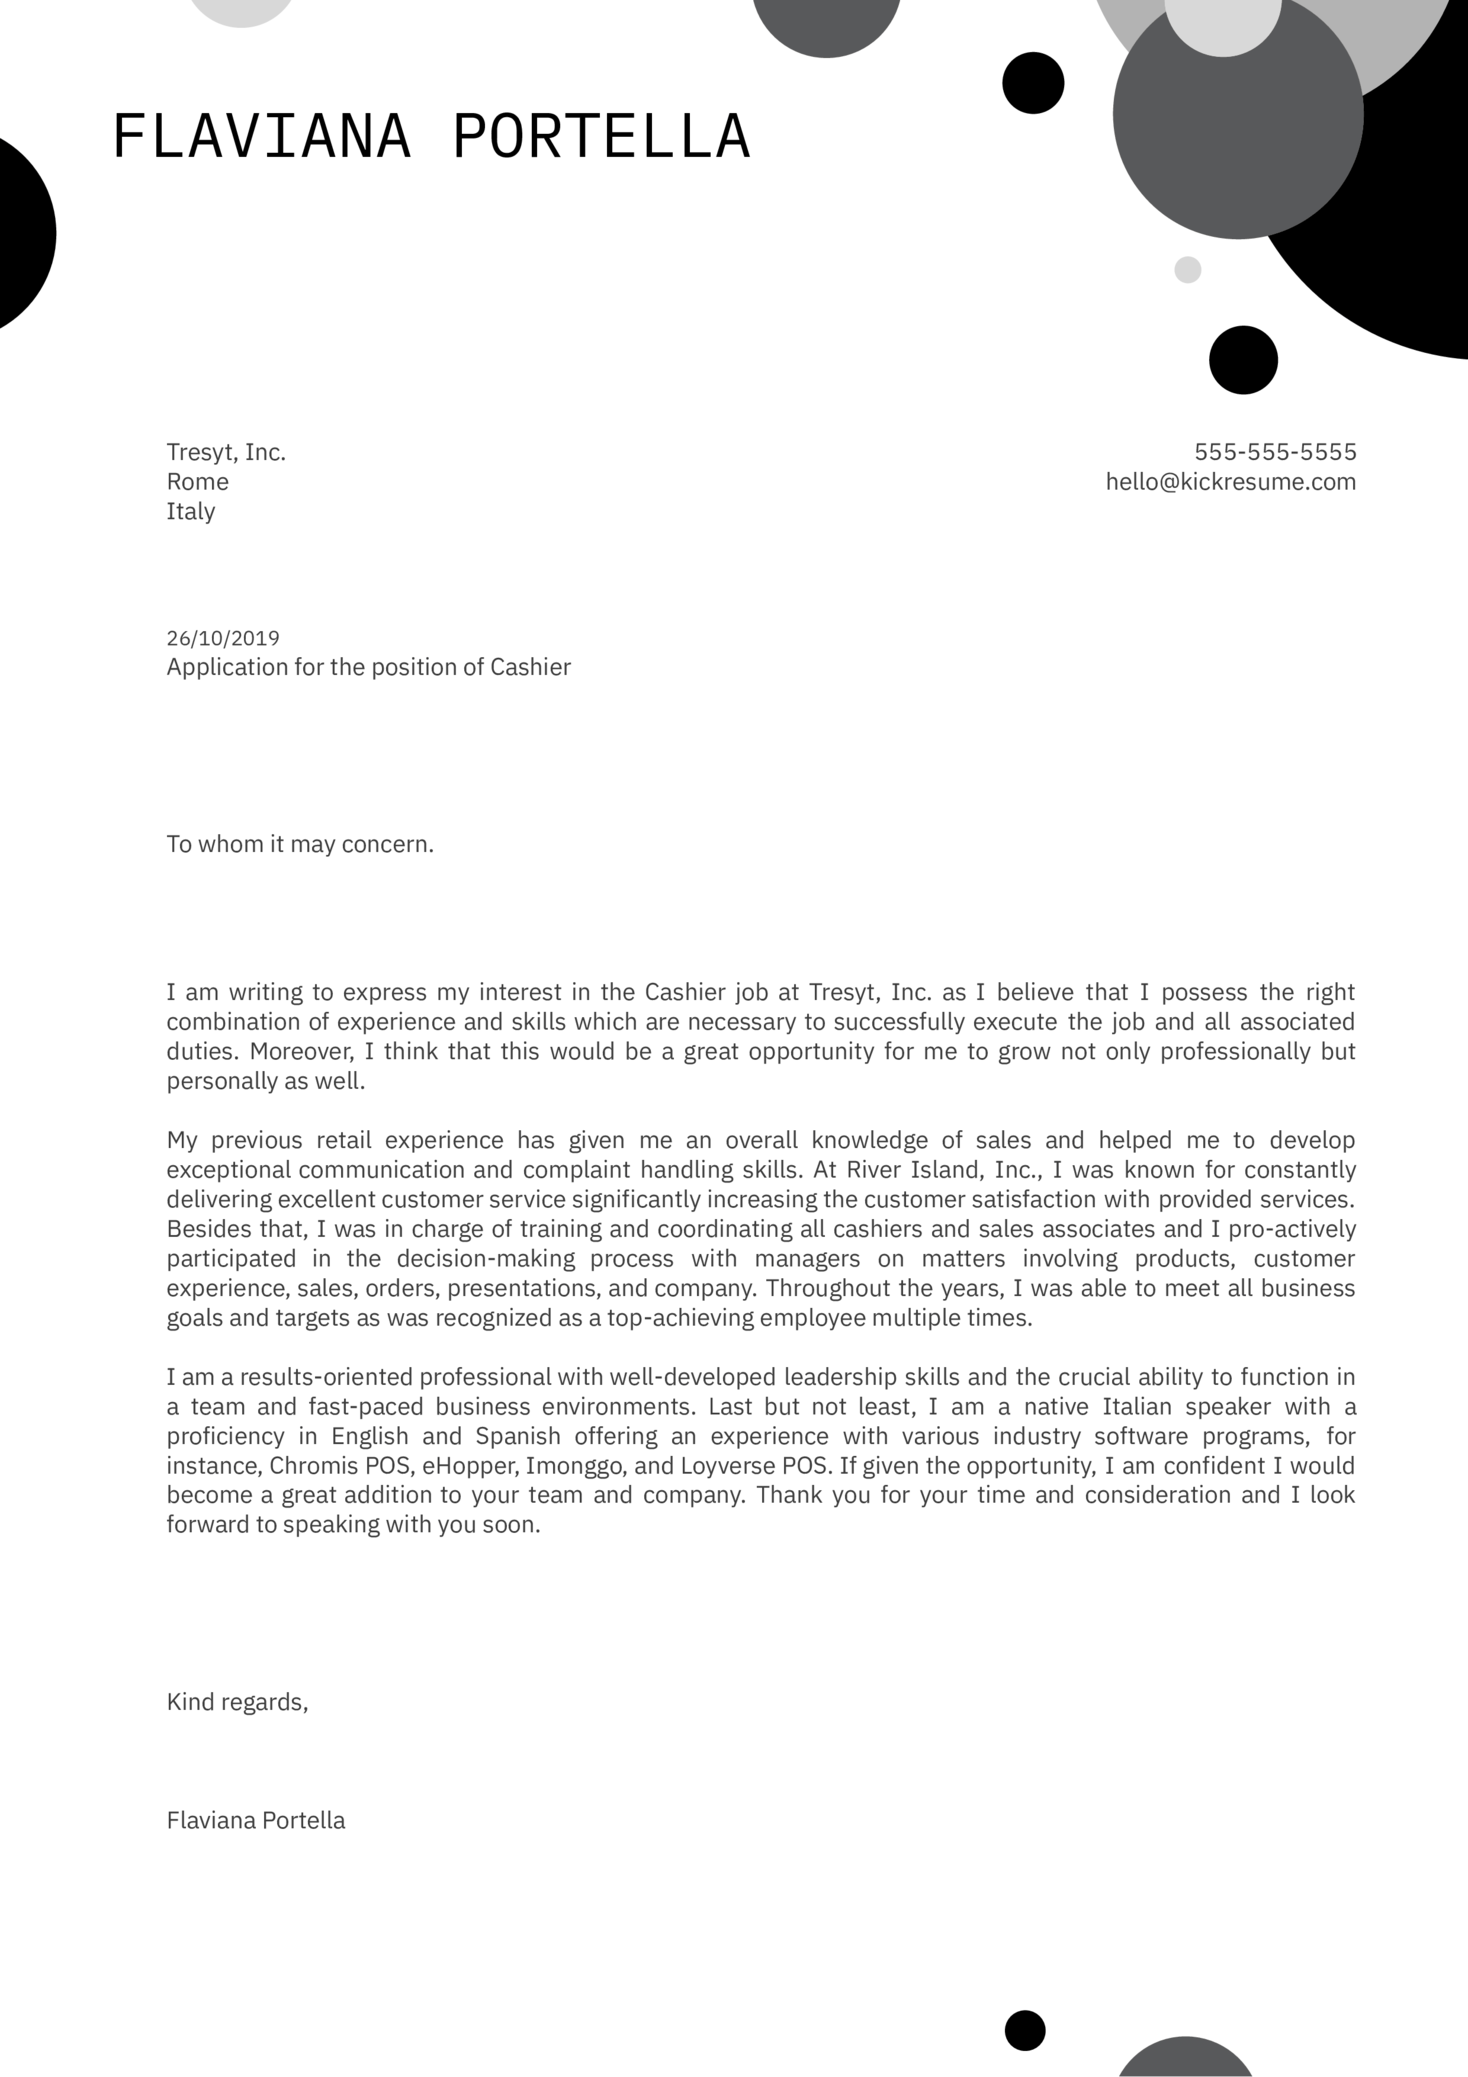 Letter Of Interest For Job Sample from s3-eu-west-1.amazonaws.com